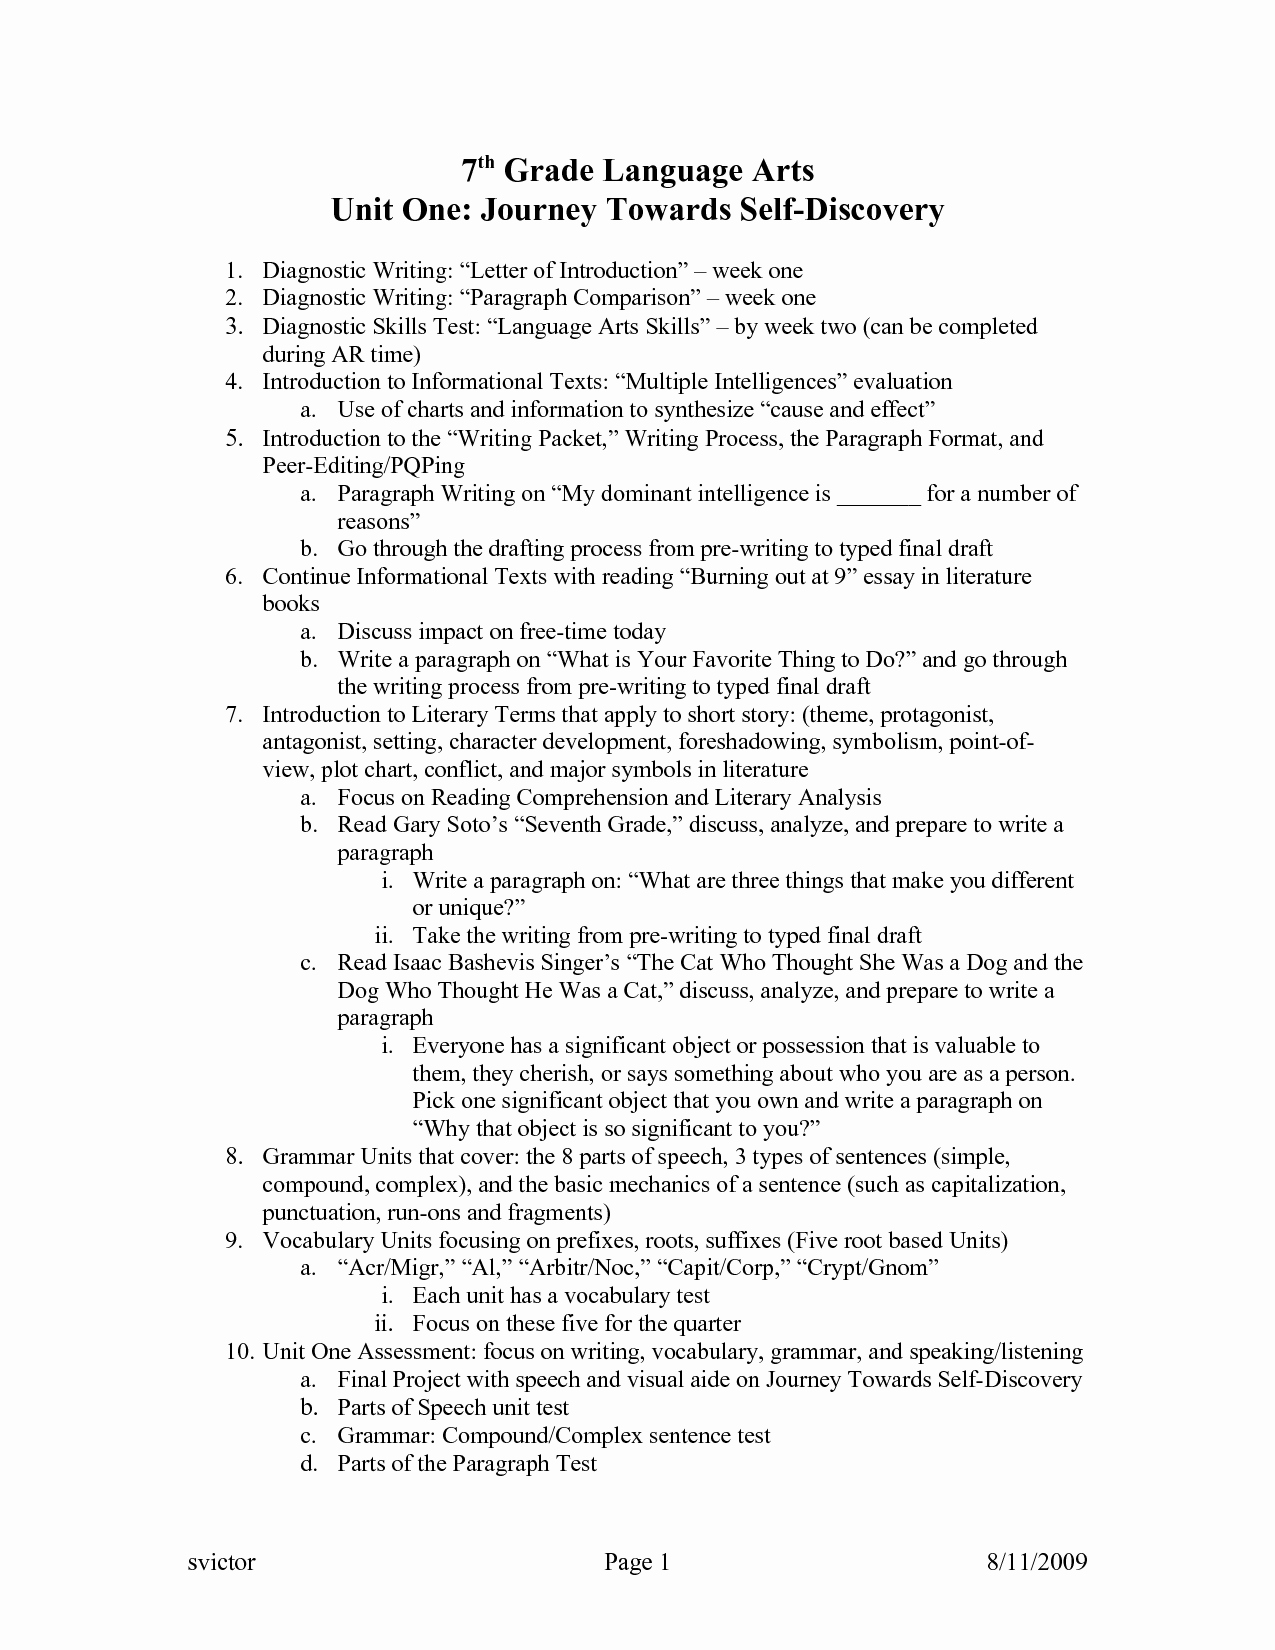 7th Grade Language Arts Worksheets Inspirational 20 Best Of Seventh Grade History Worksheets 7th